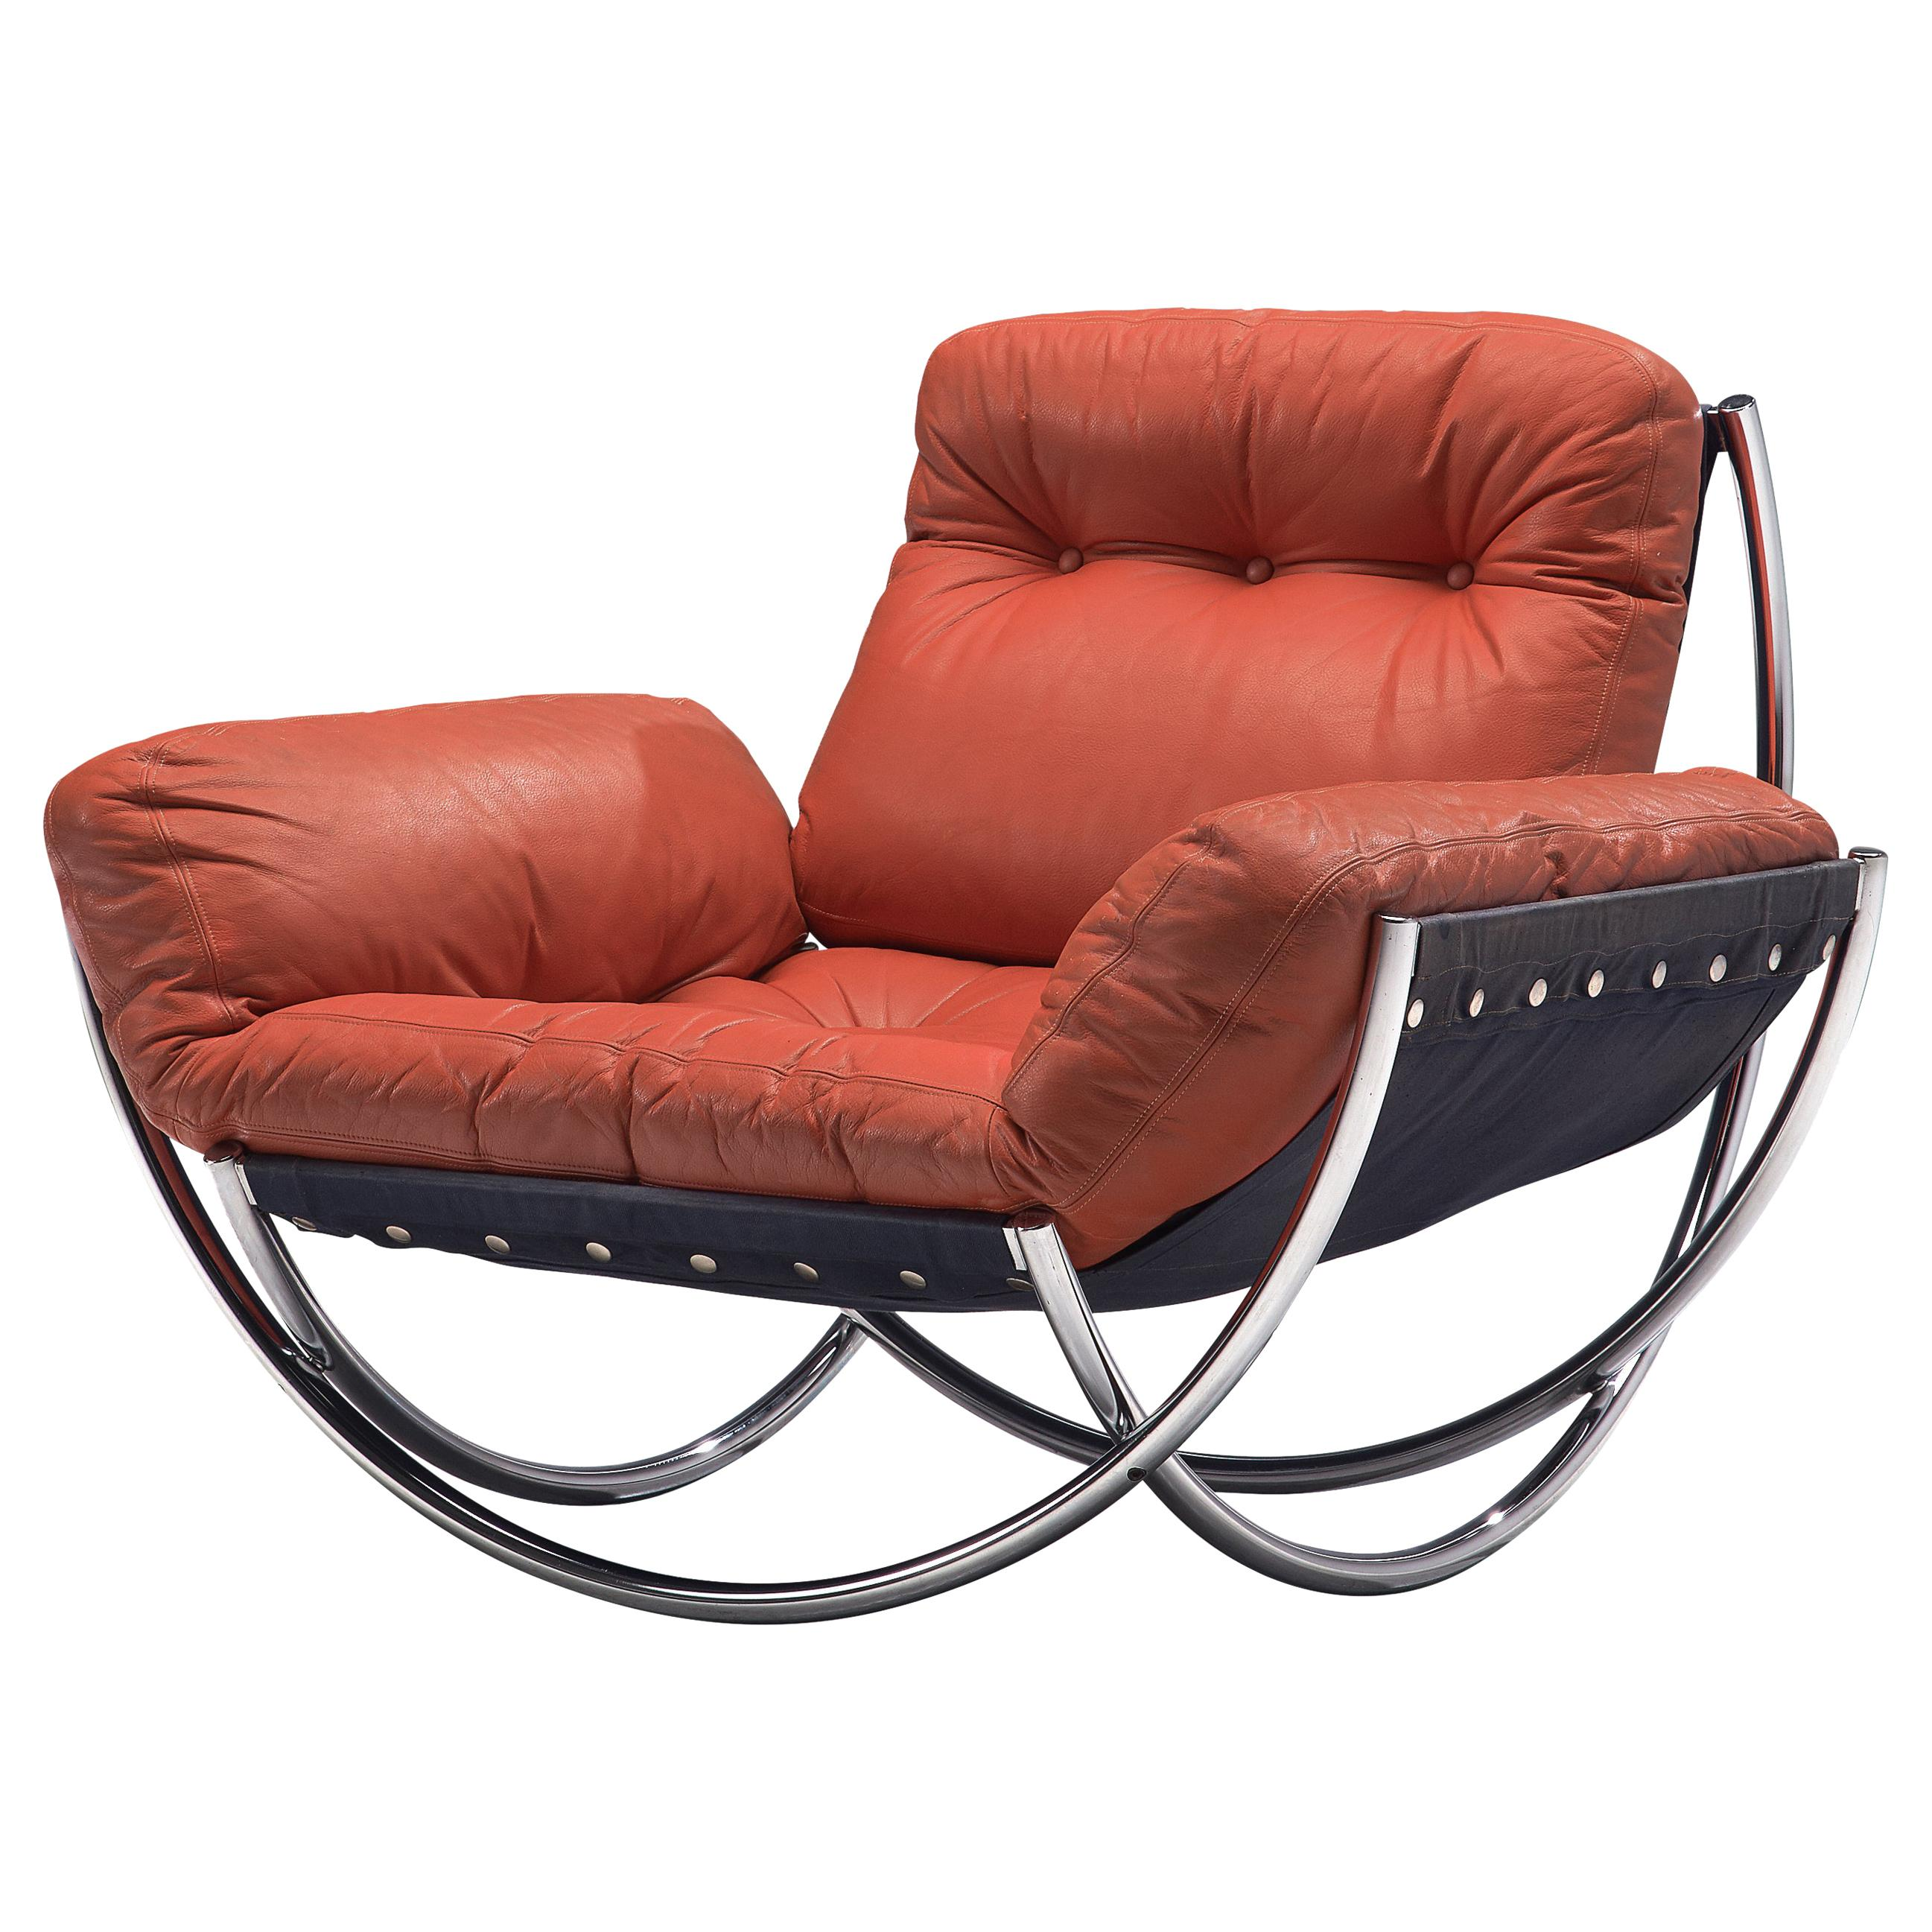 Lennart Bender for AB Wilo 'Wibroo' Lounge Chair in Chrome and Red Leather